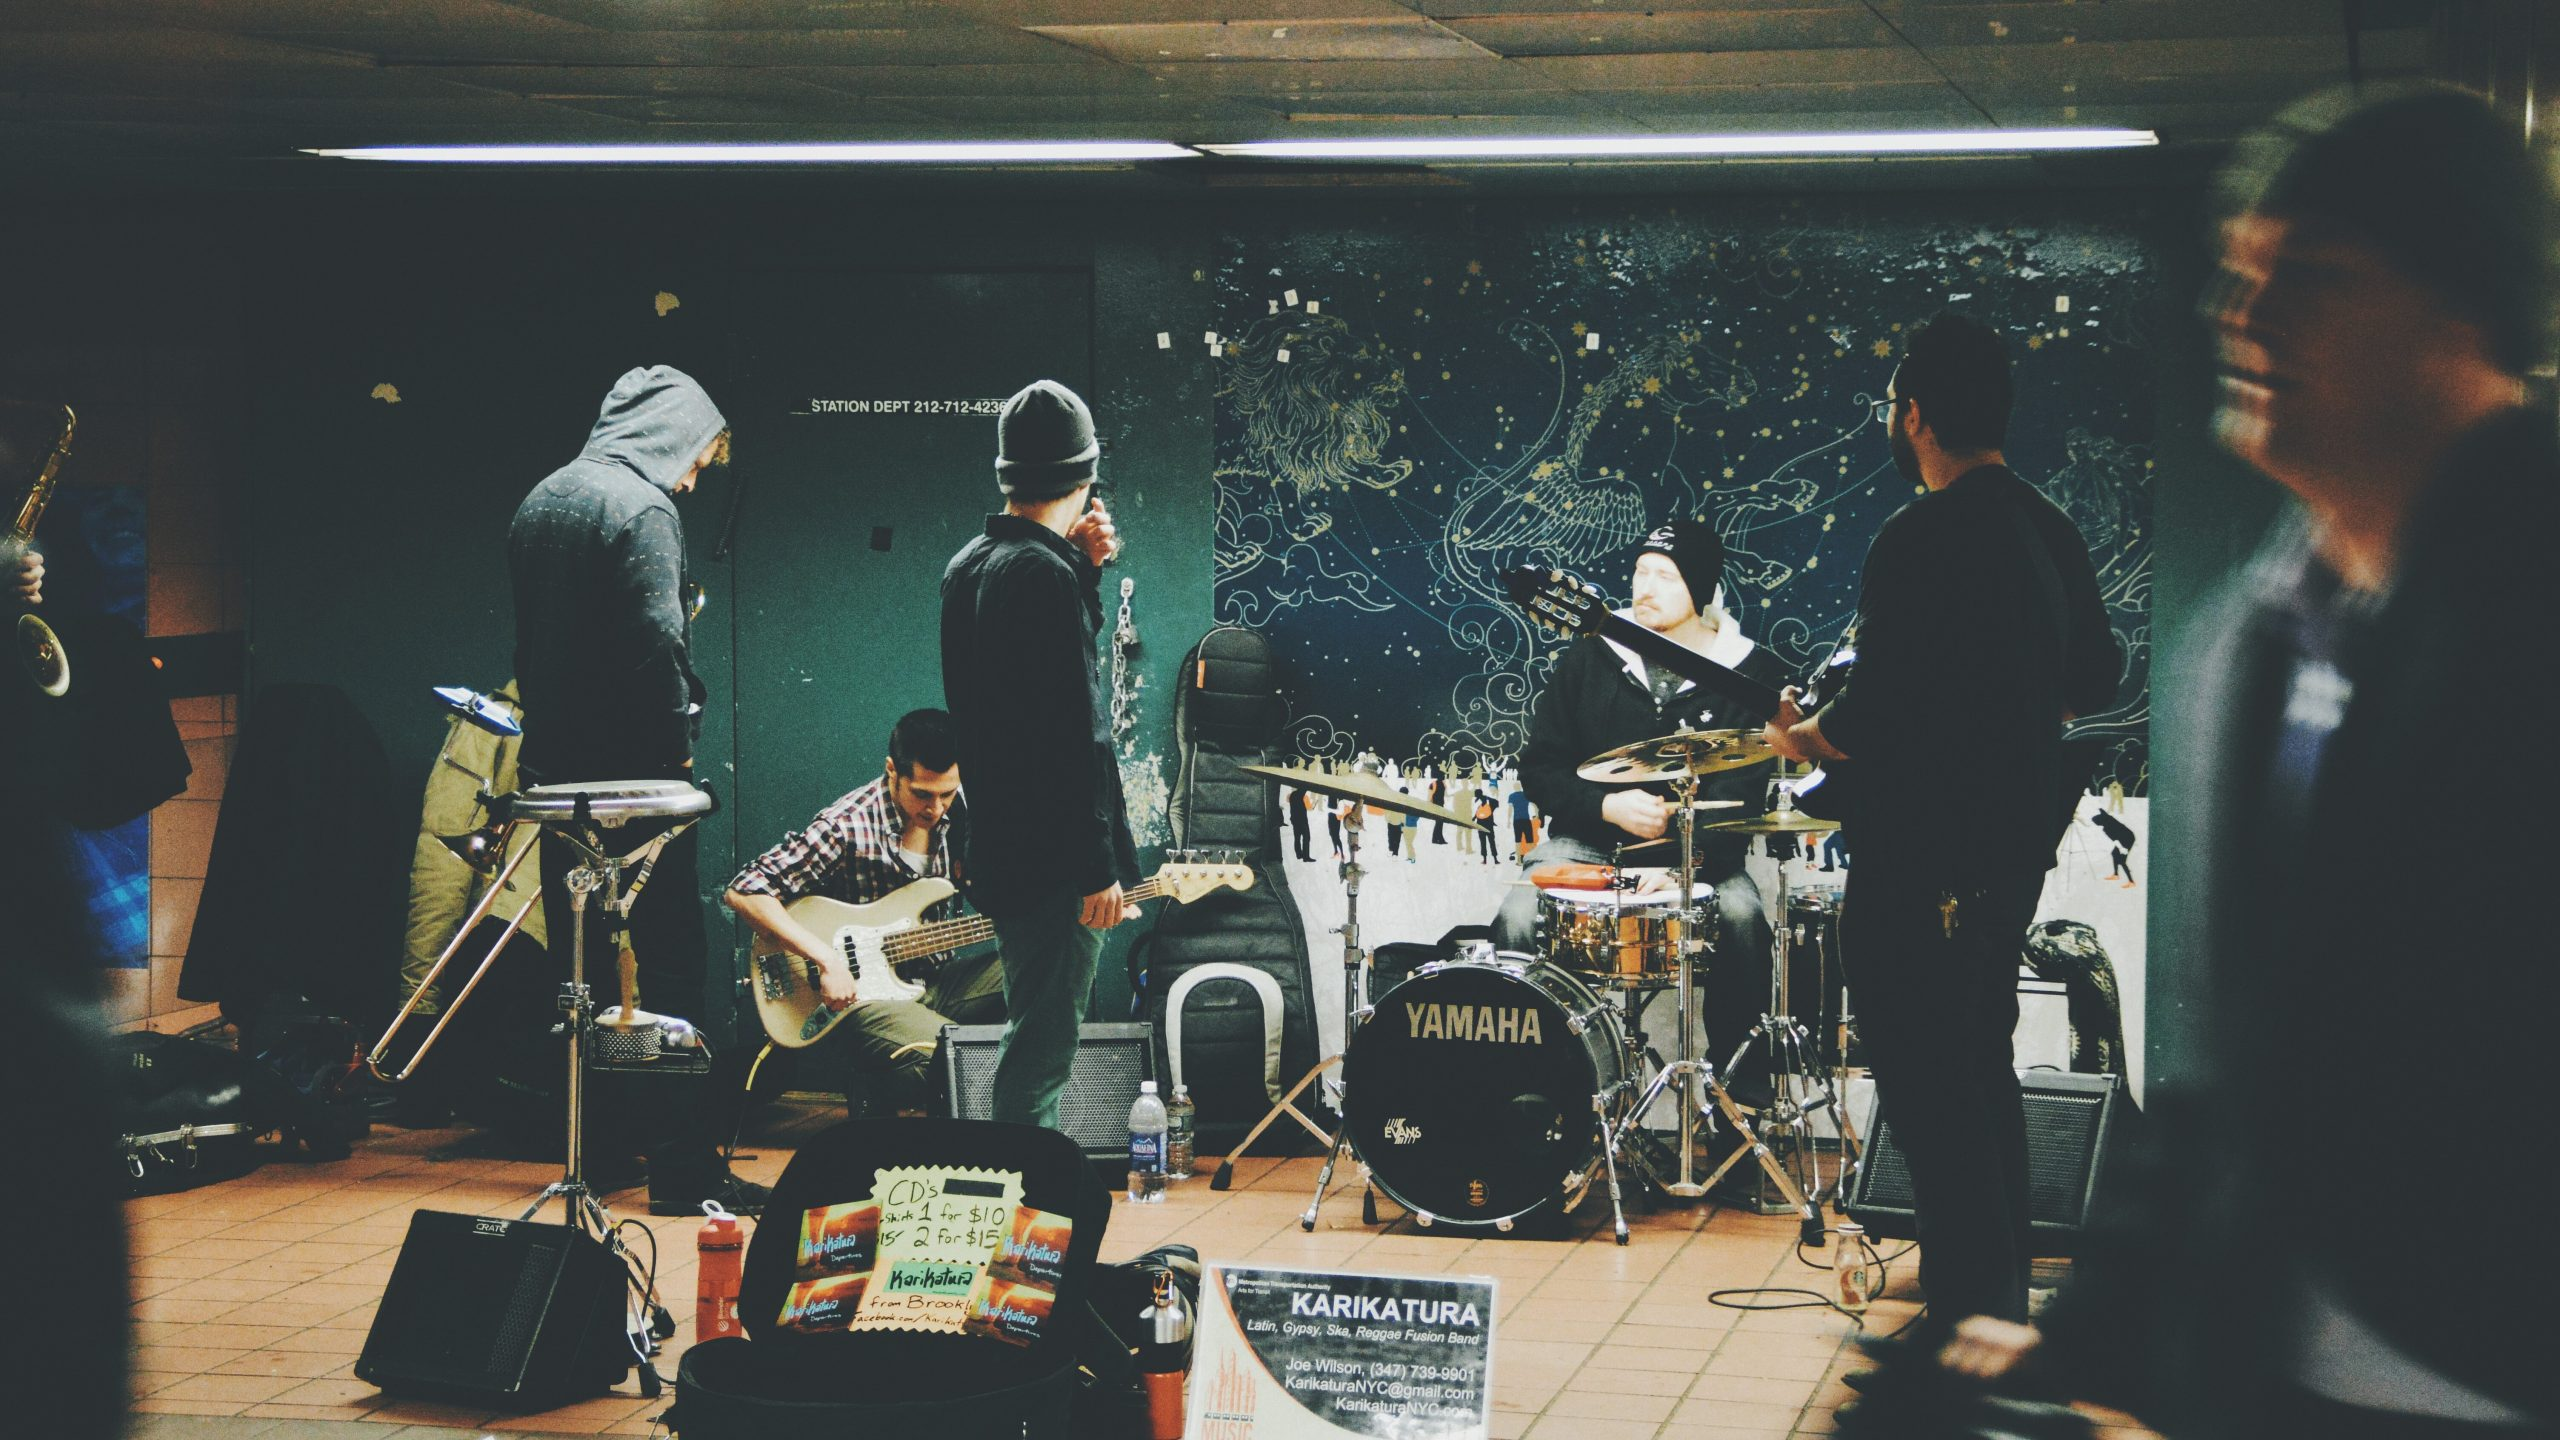 Local Band playing a show photographed by Hans Vivek sourced off of unsplash